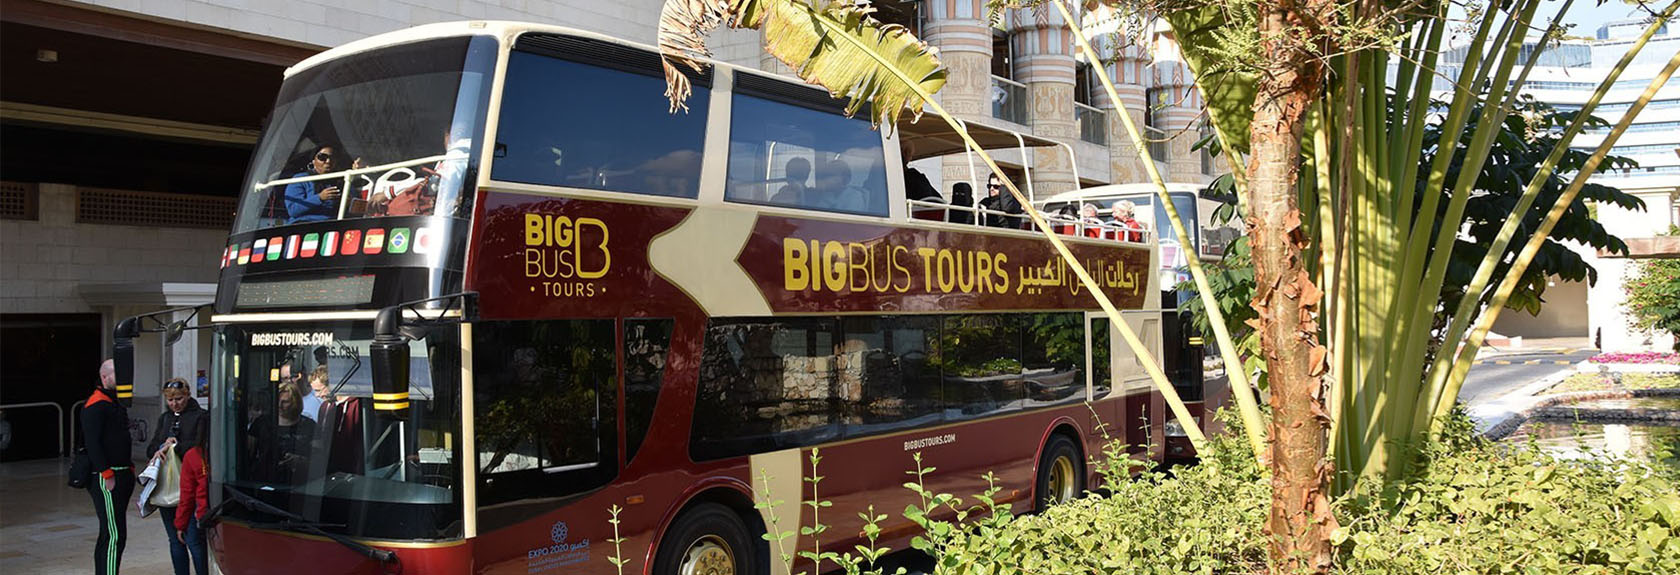 Dubai Big Bus Hop-on Hop-off